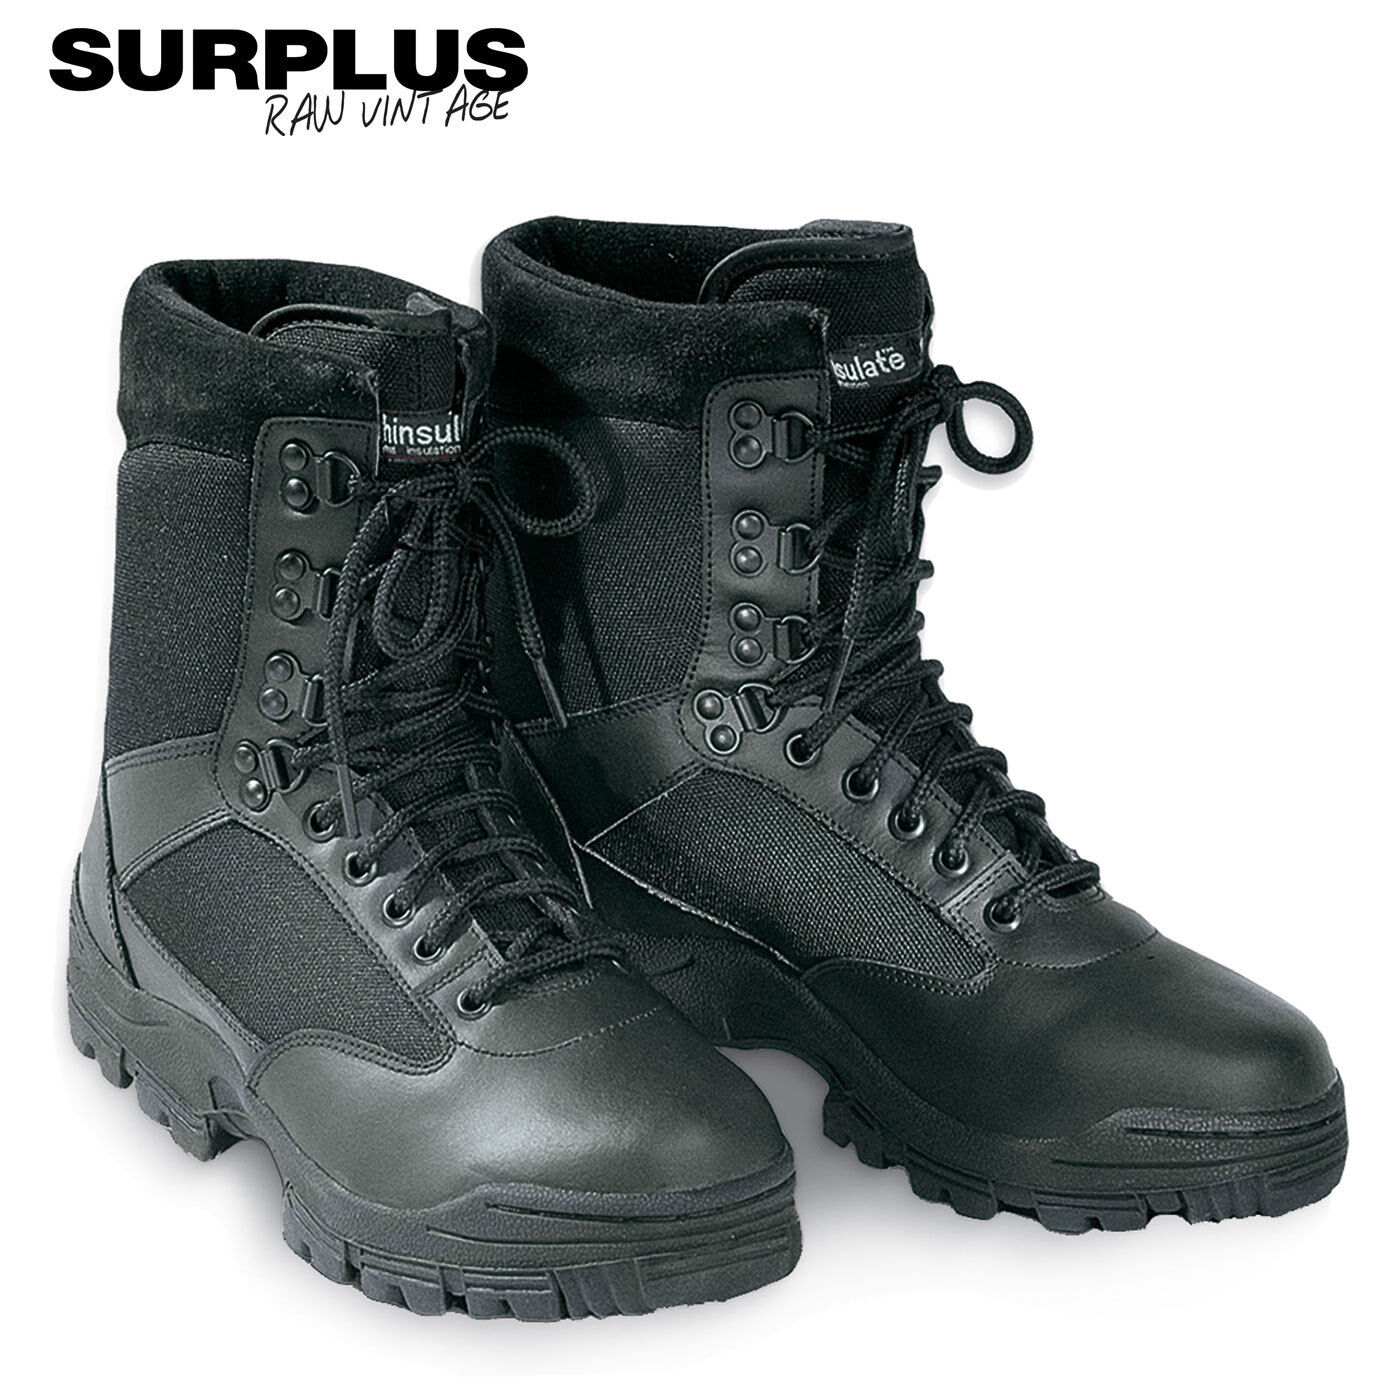 Surplus Security Boots Worker 9loch STIVALI SCARPE DA LAVORO Worker Boots Gotcha paintball 36b88d